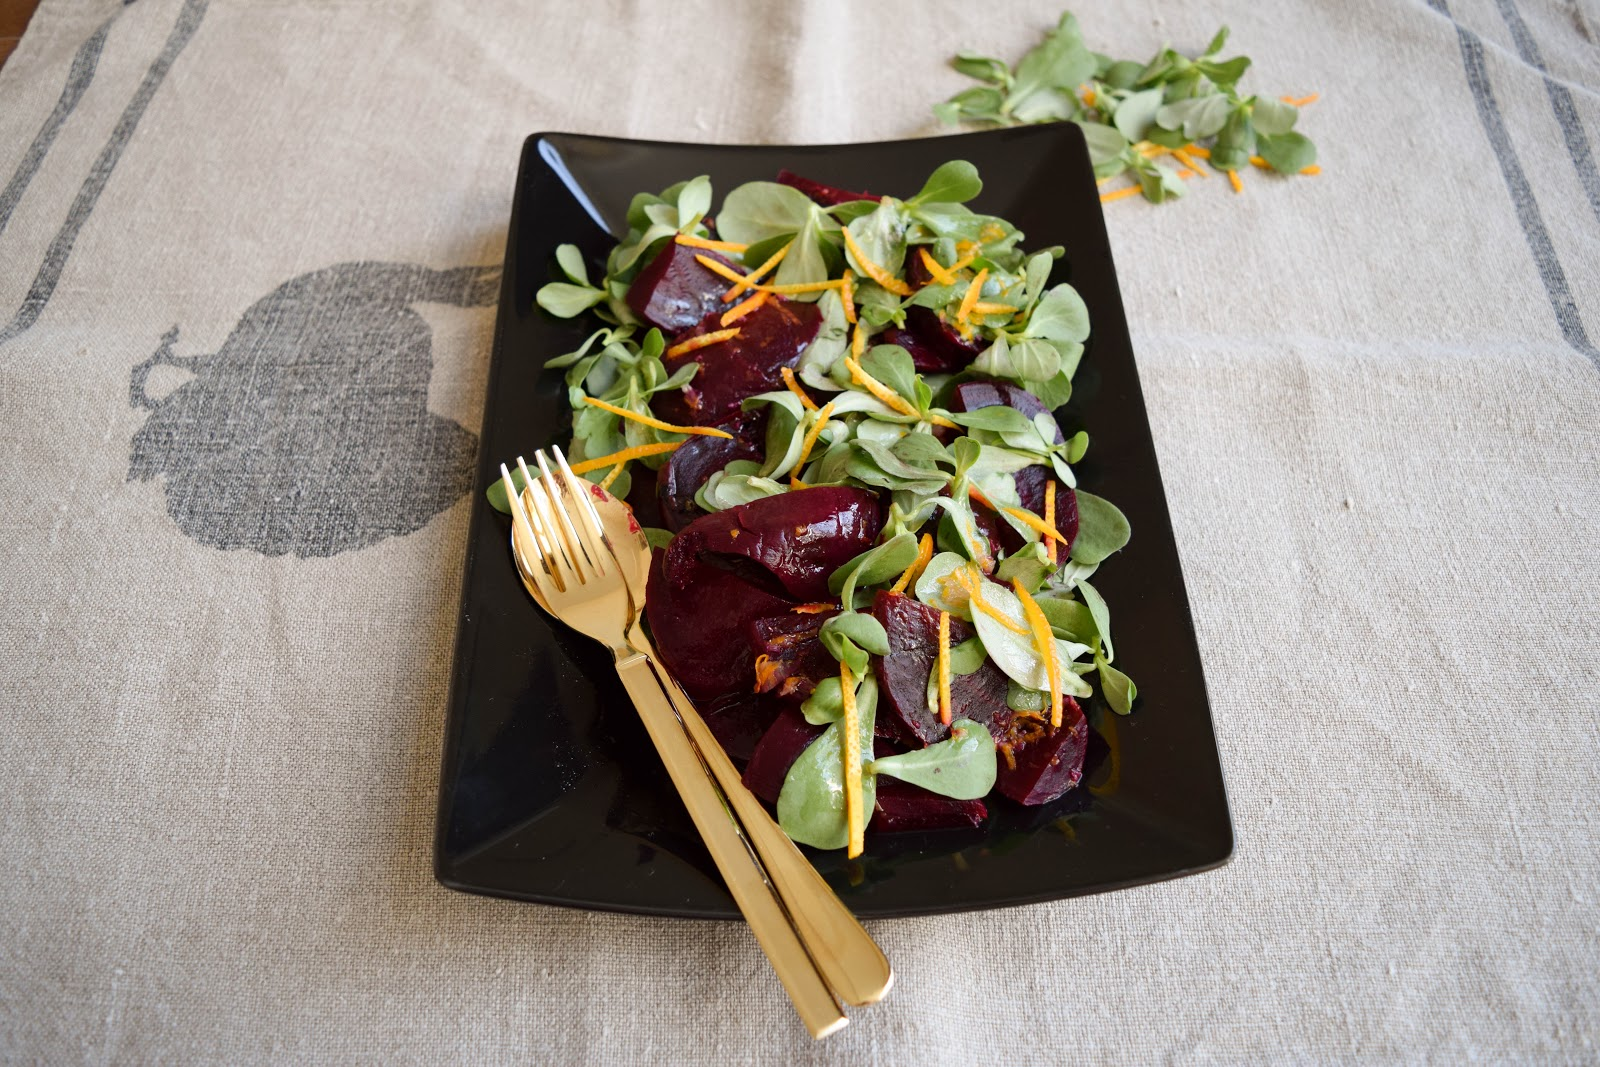 Beetroot and purslane salad with orange dressing